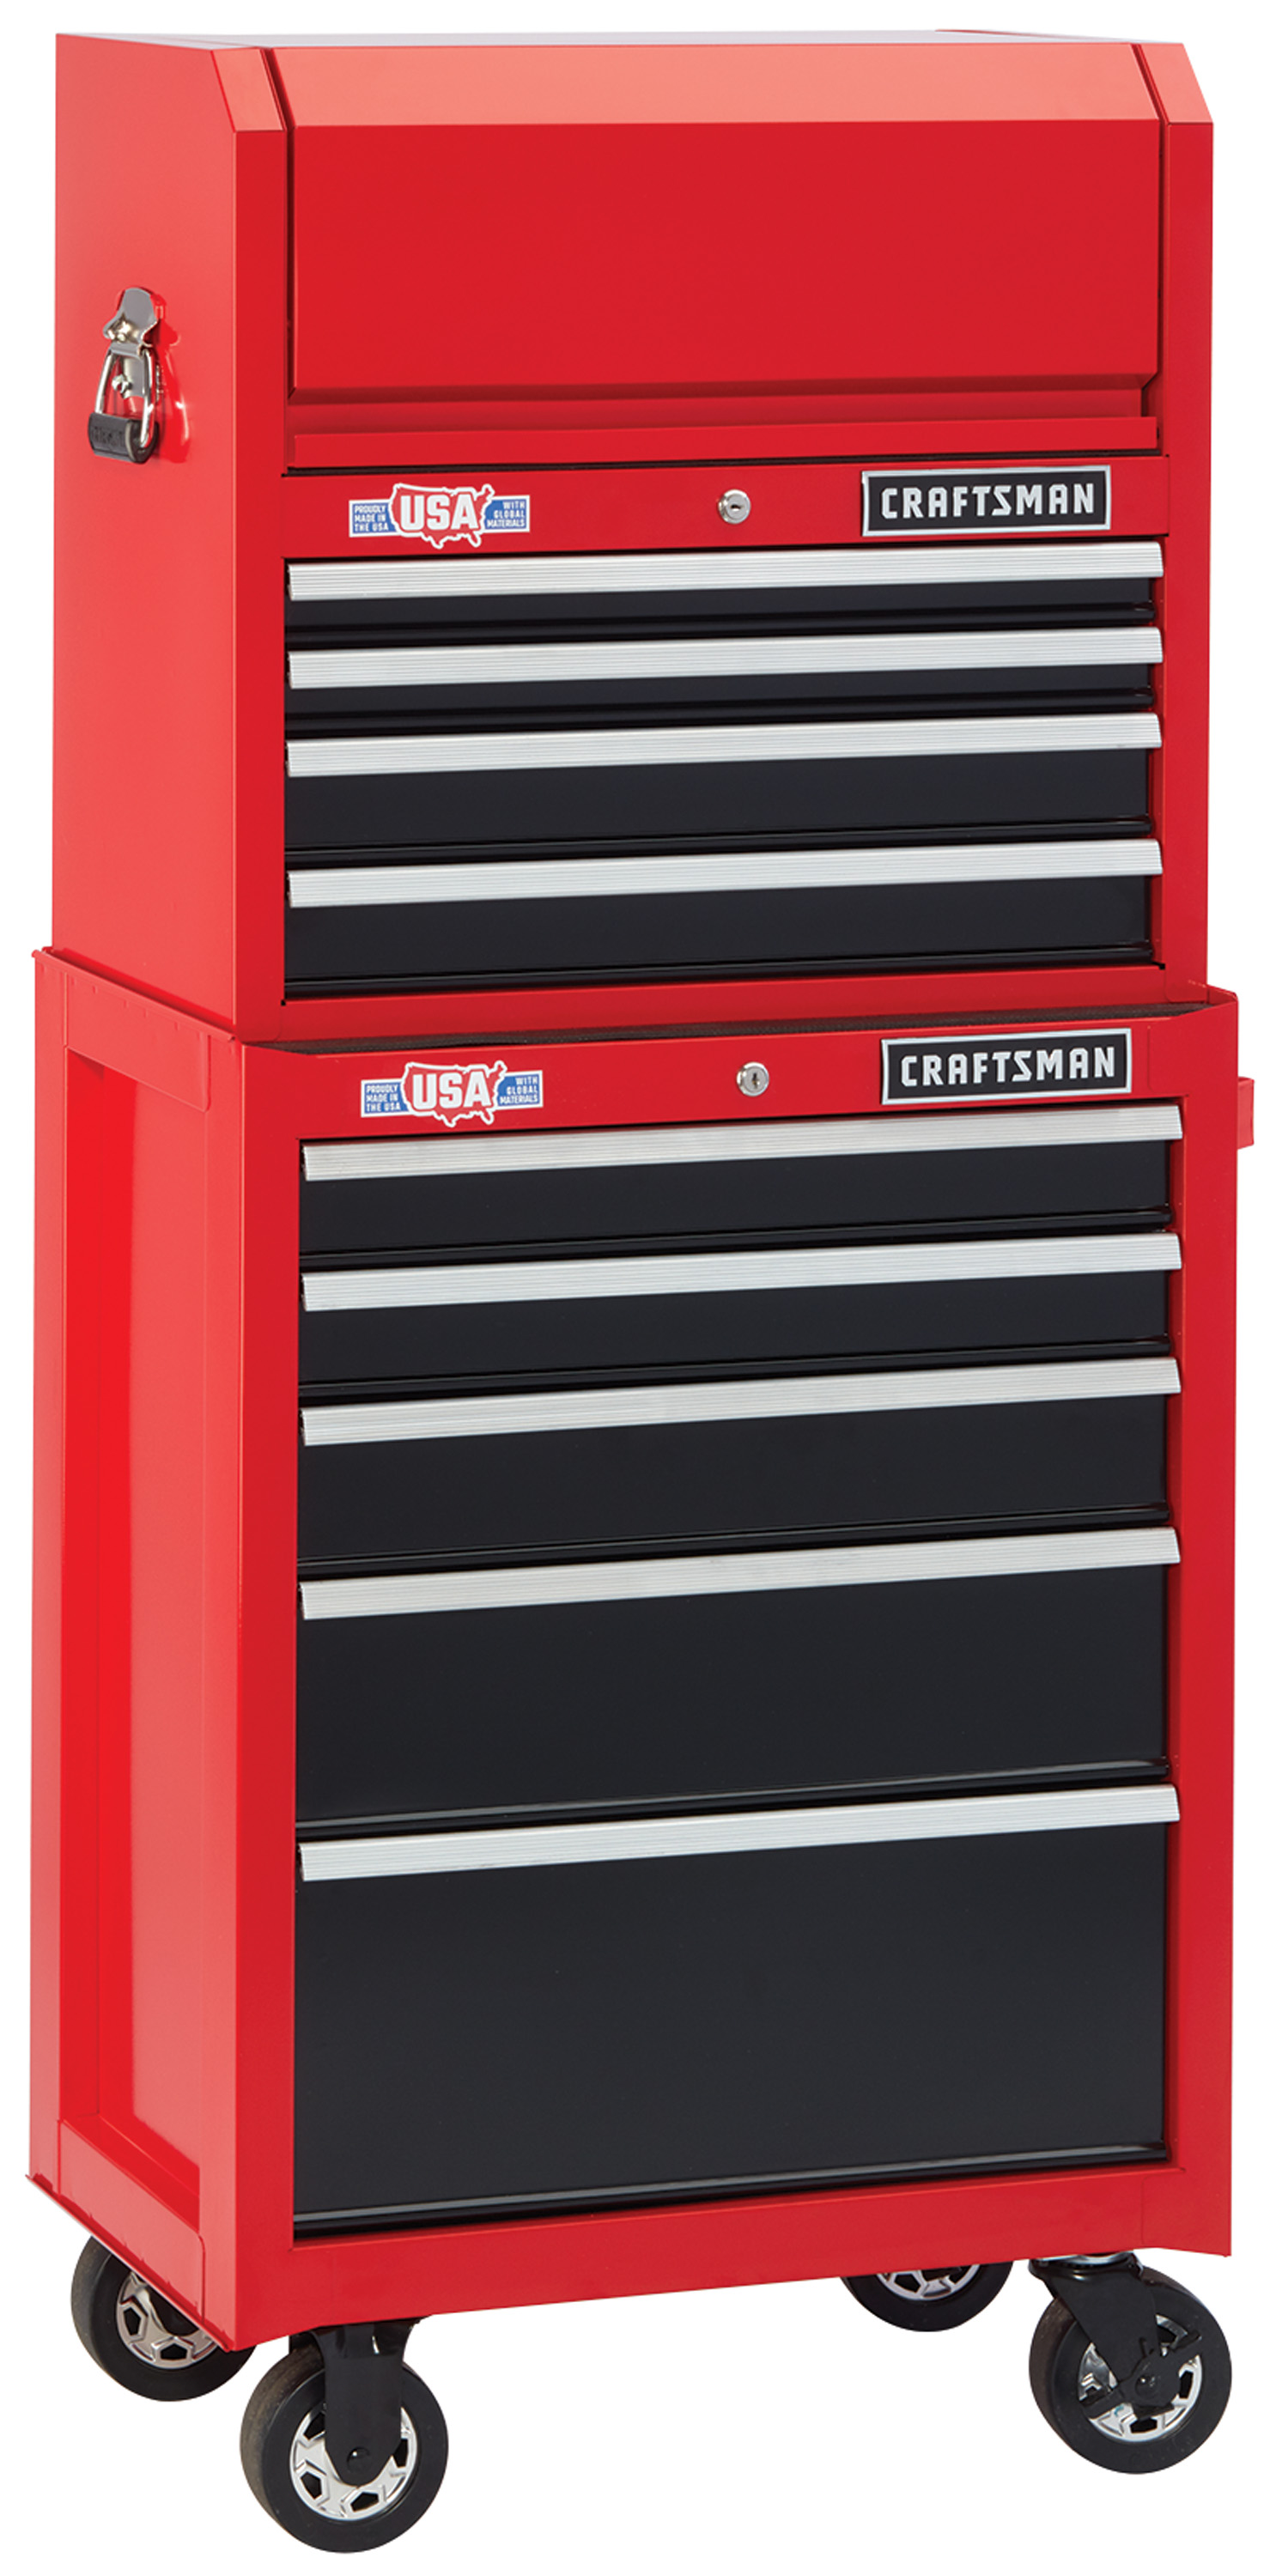 Craftsman Introduces Lineup Of Storage Solutions